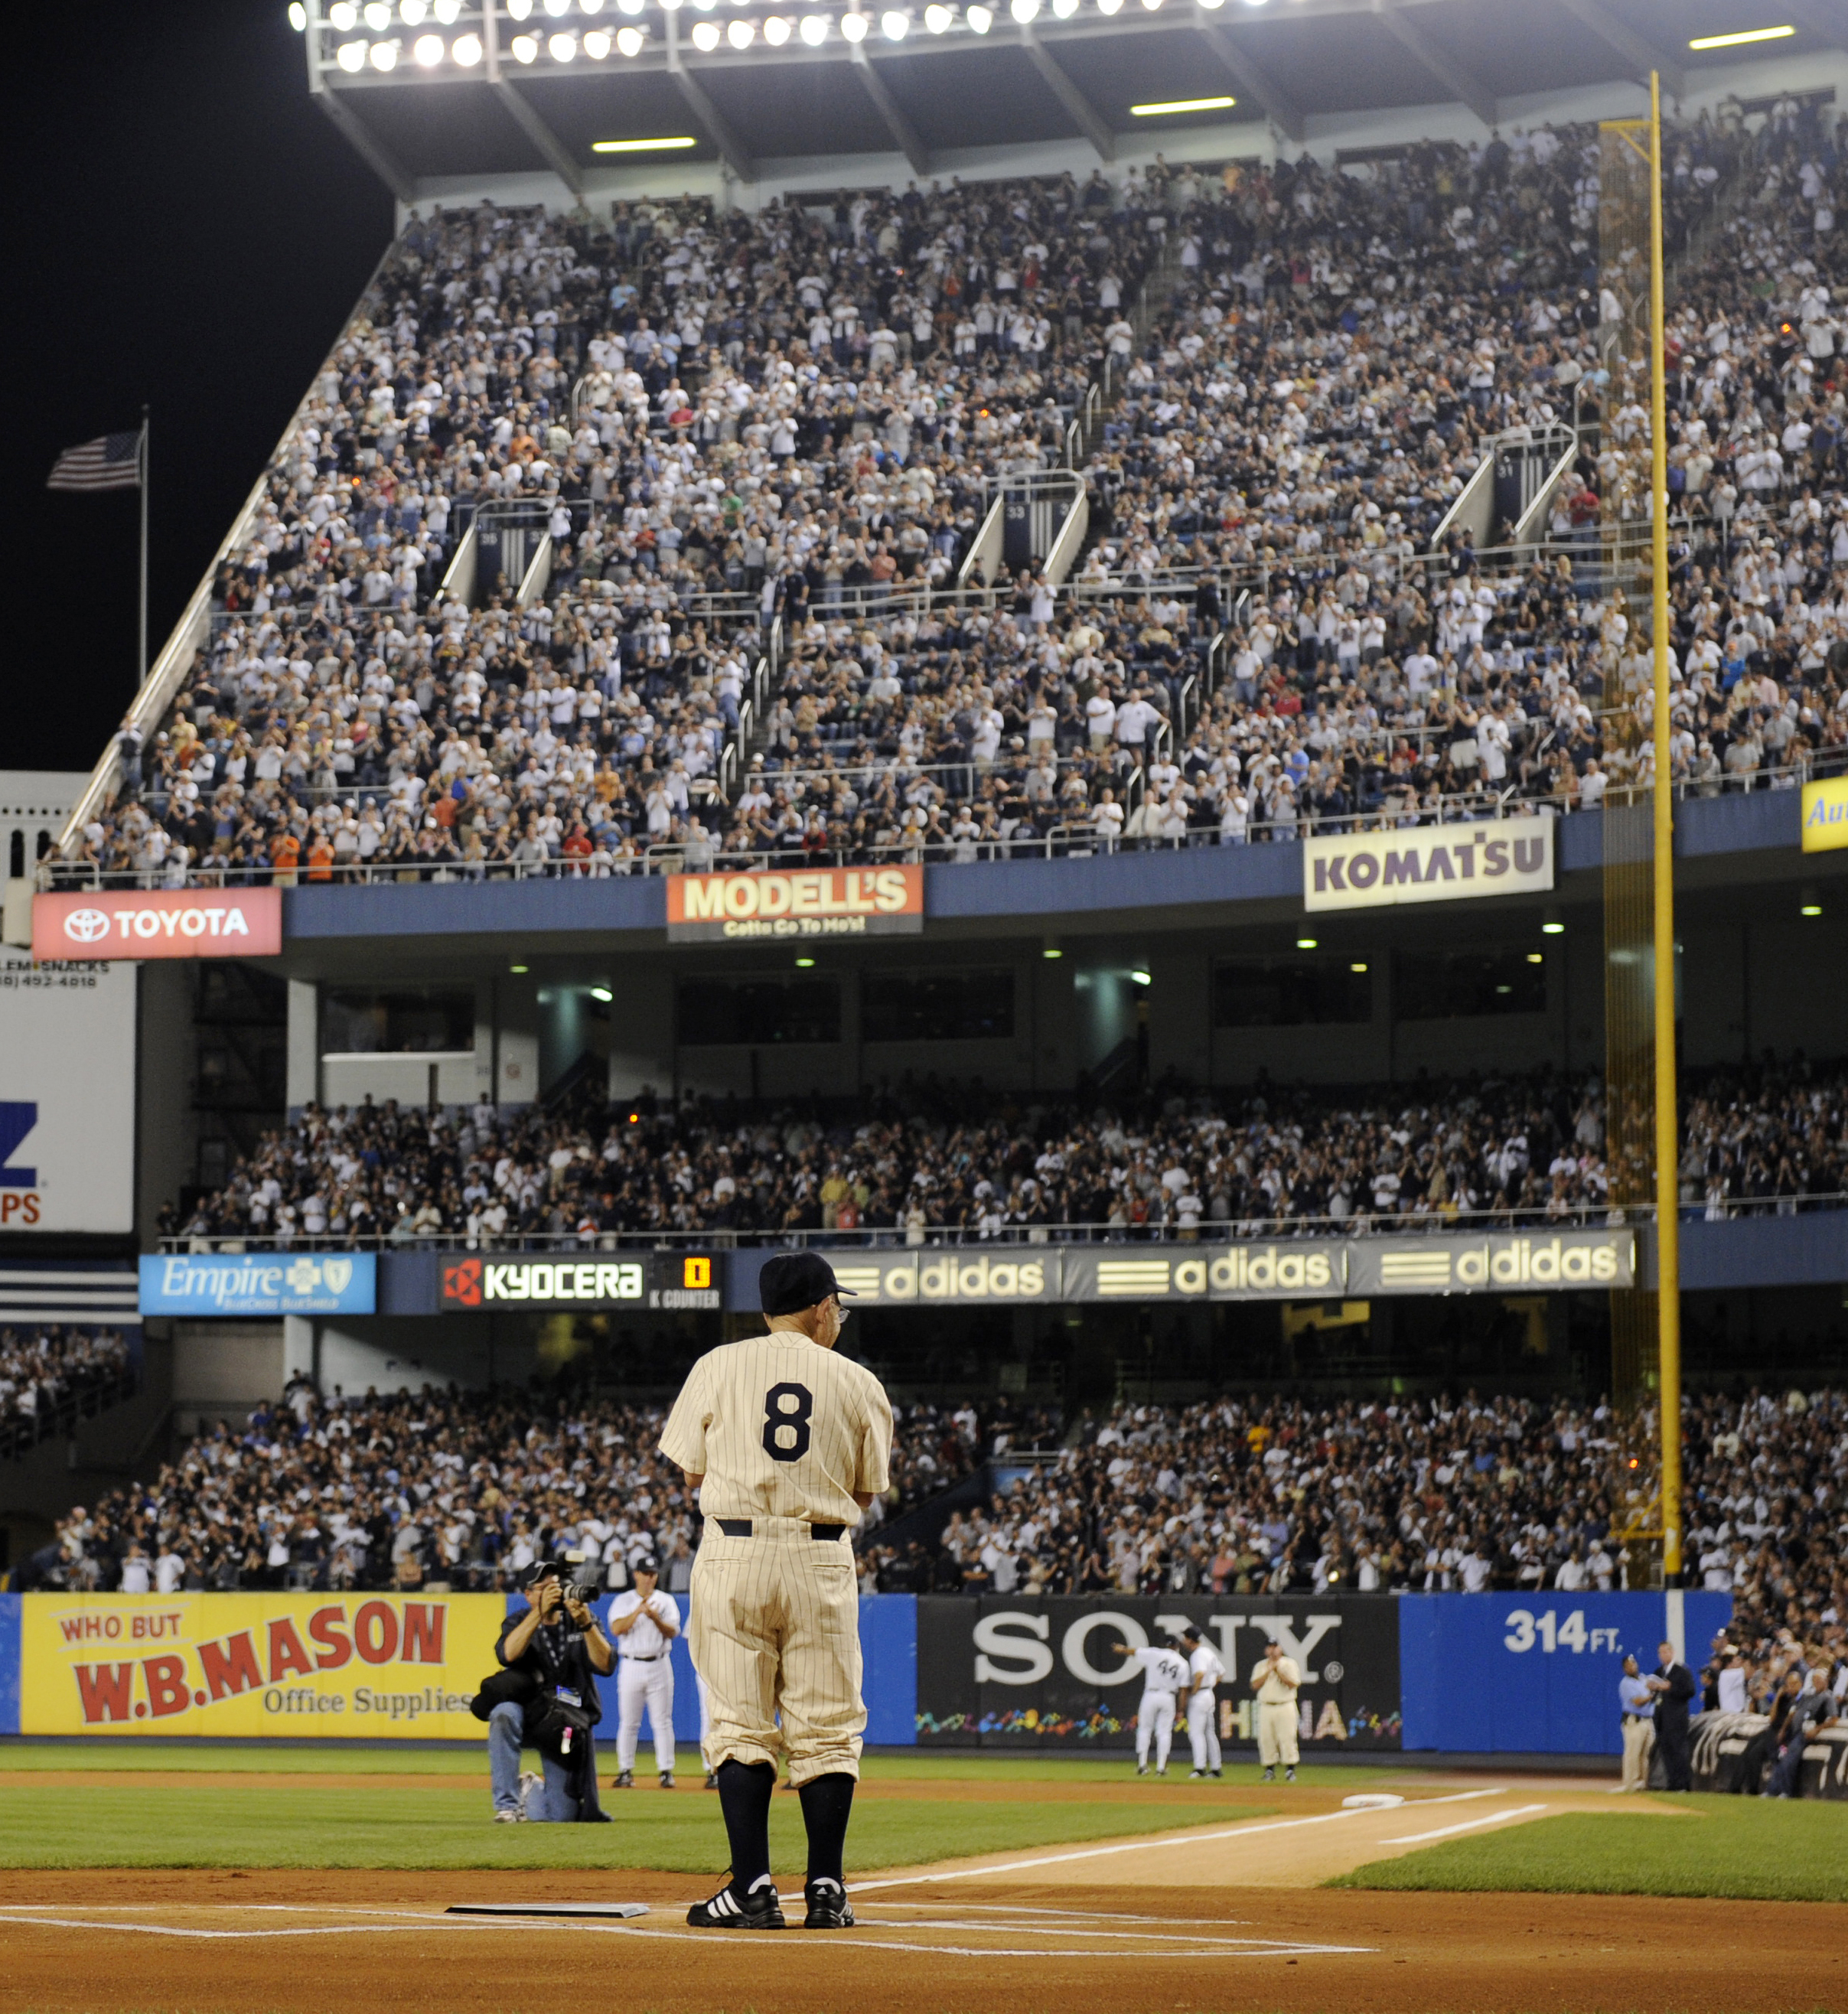 FILE - In this Sept. 21, 2008, file photo, former New York Yankees catcher Yogi Berra stands at home plate at Yankee Stadium in New York, before the Yankees played the Baltimore Orioles in the final regular season baseball game at the stadium. The Hall of